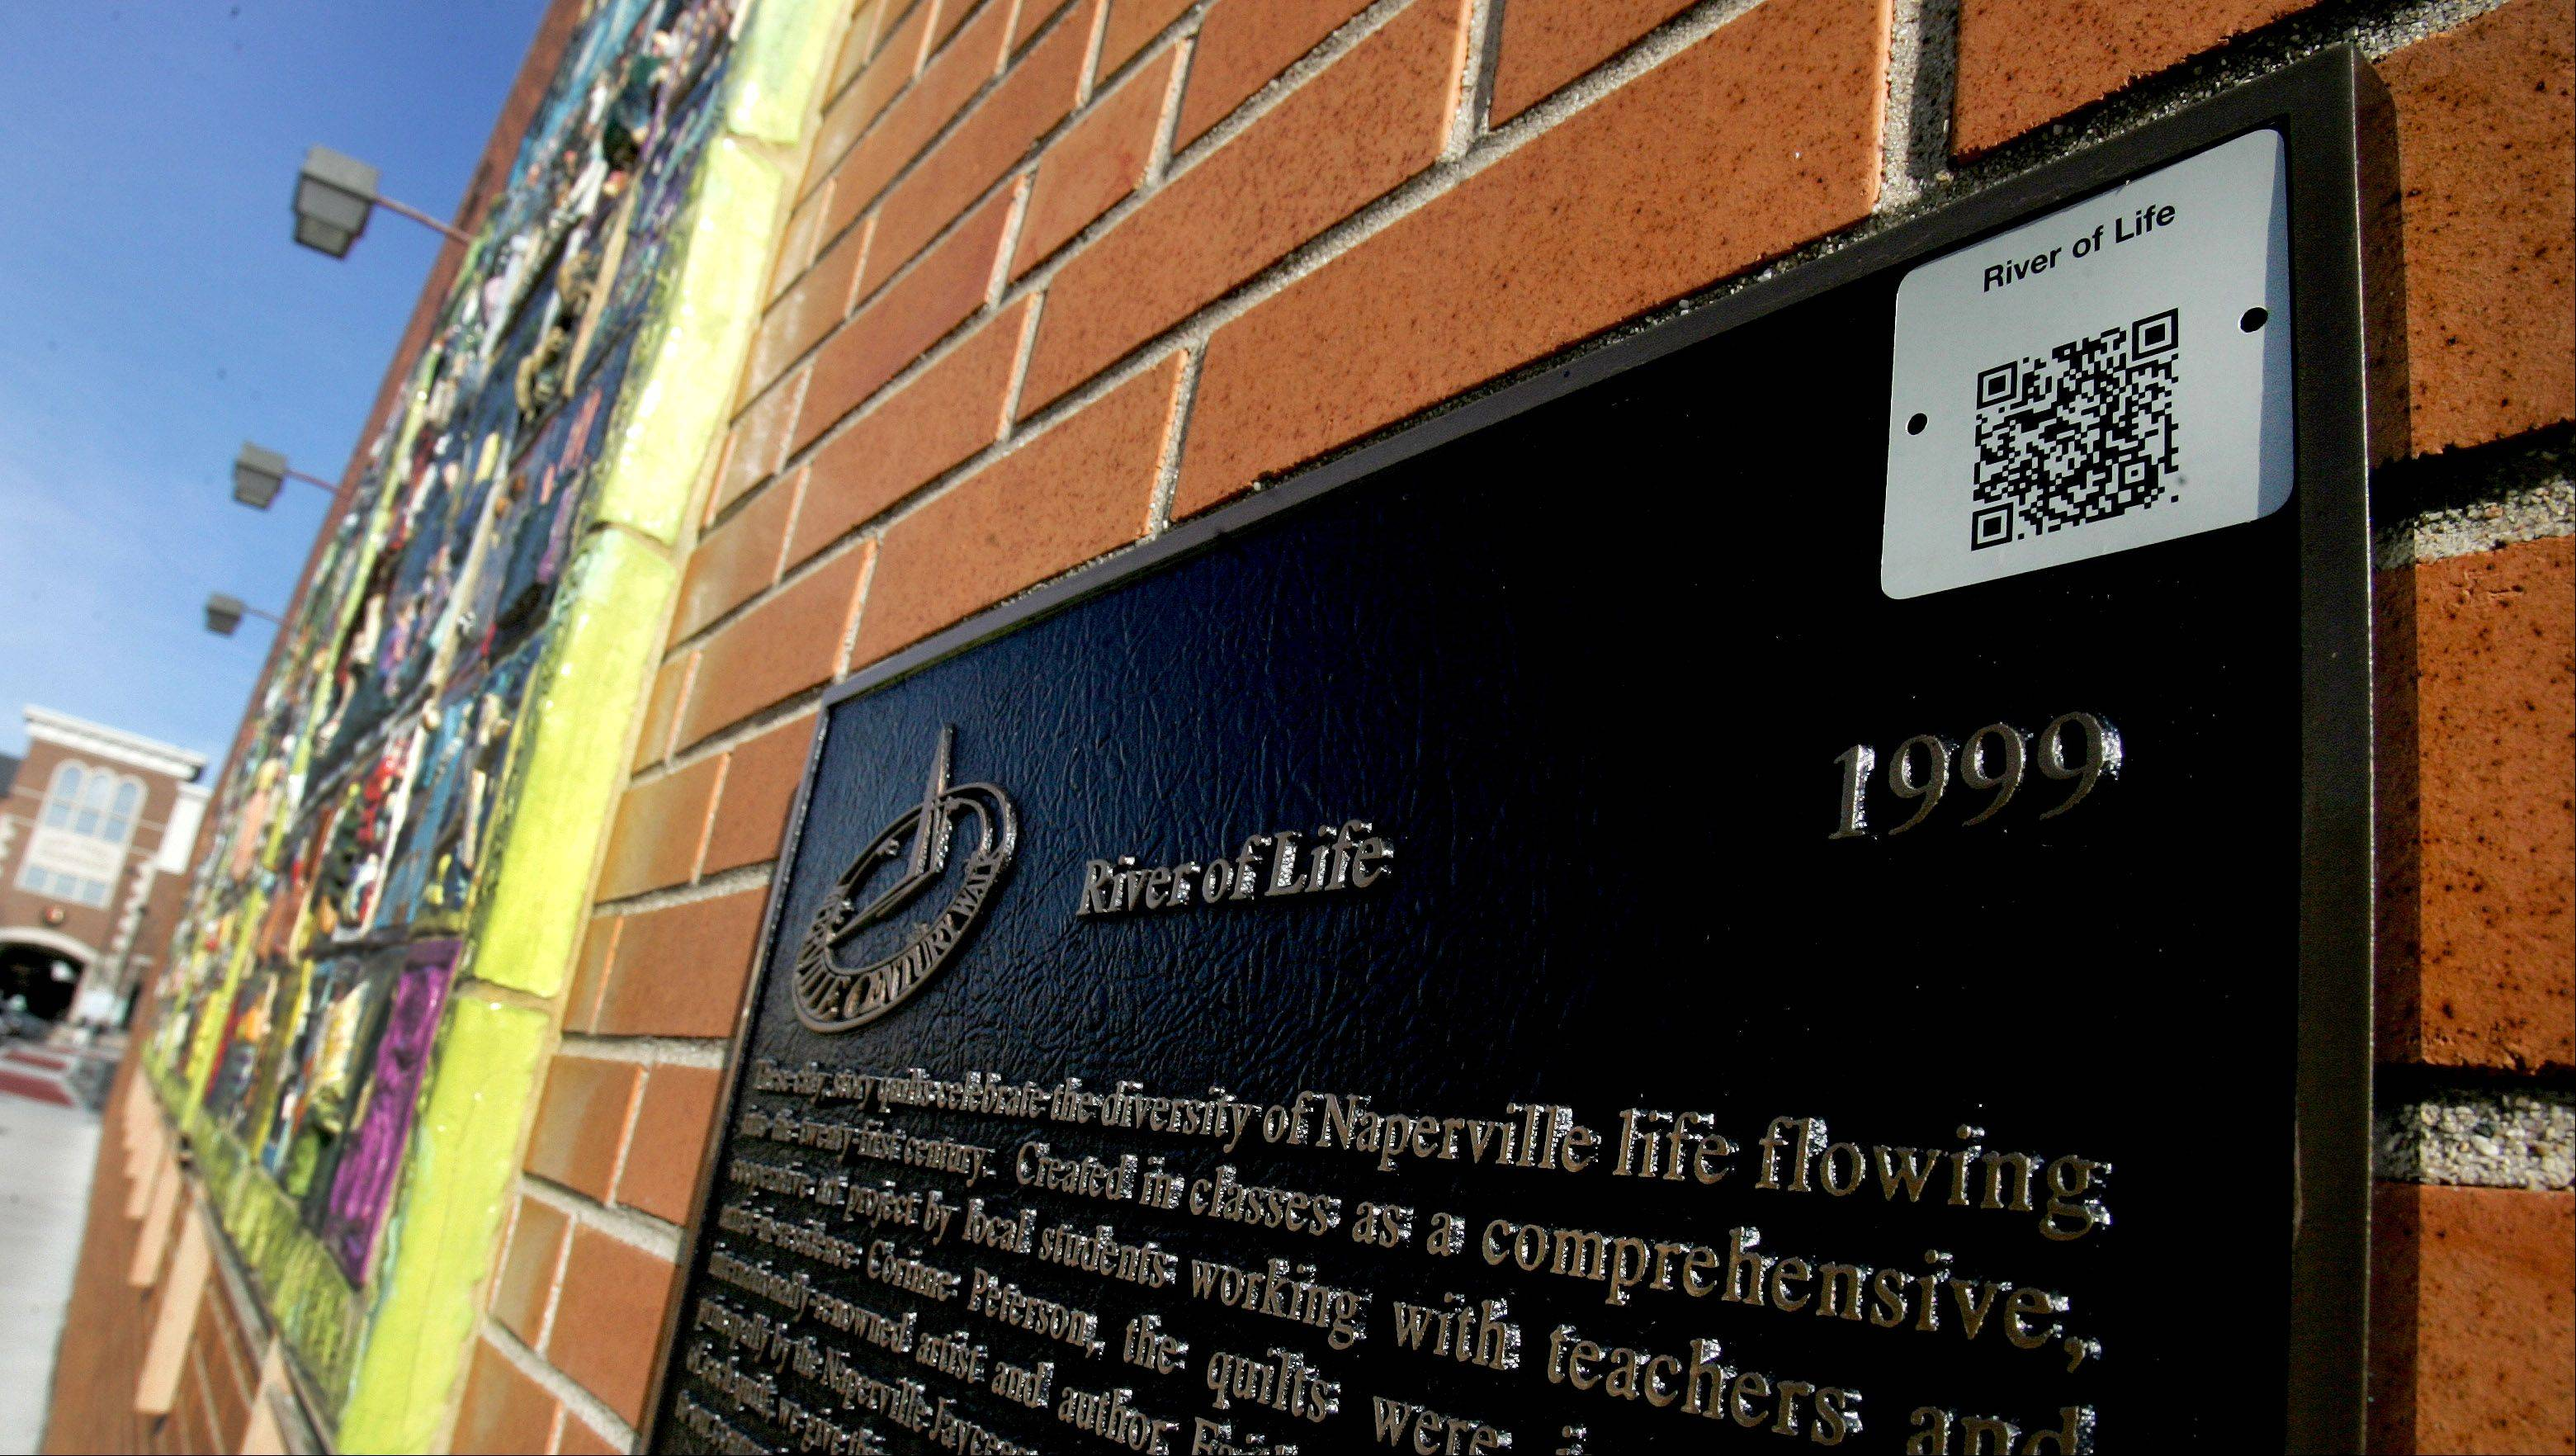 All of Naperville's Century Walk public art pieces now have QR codes that lead you to audio clips about the pieces.